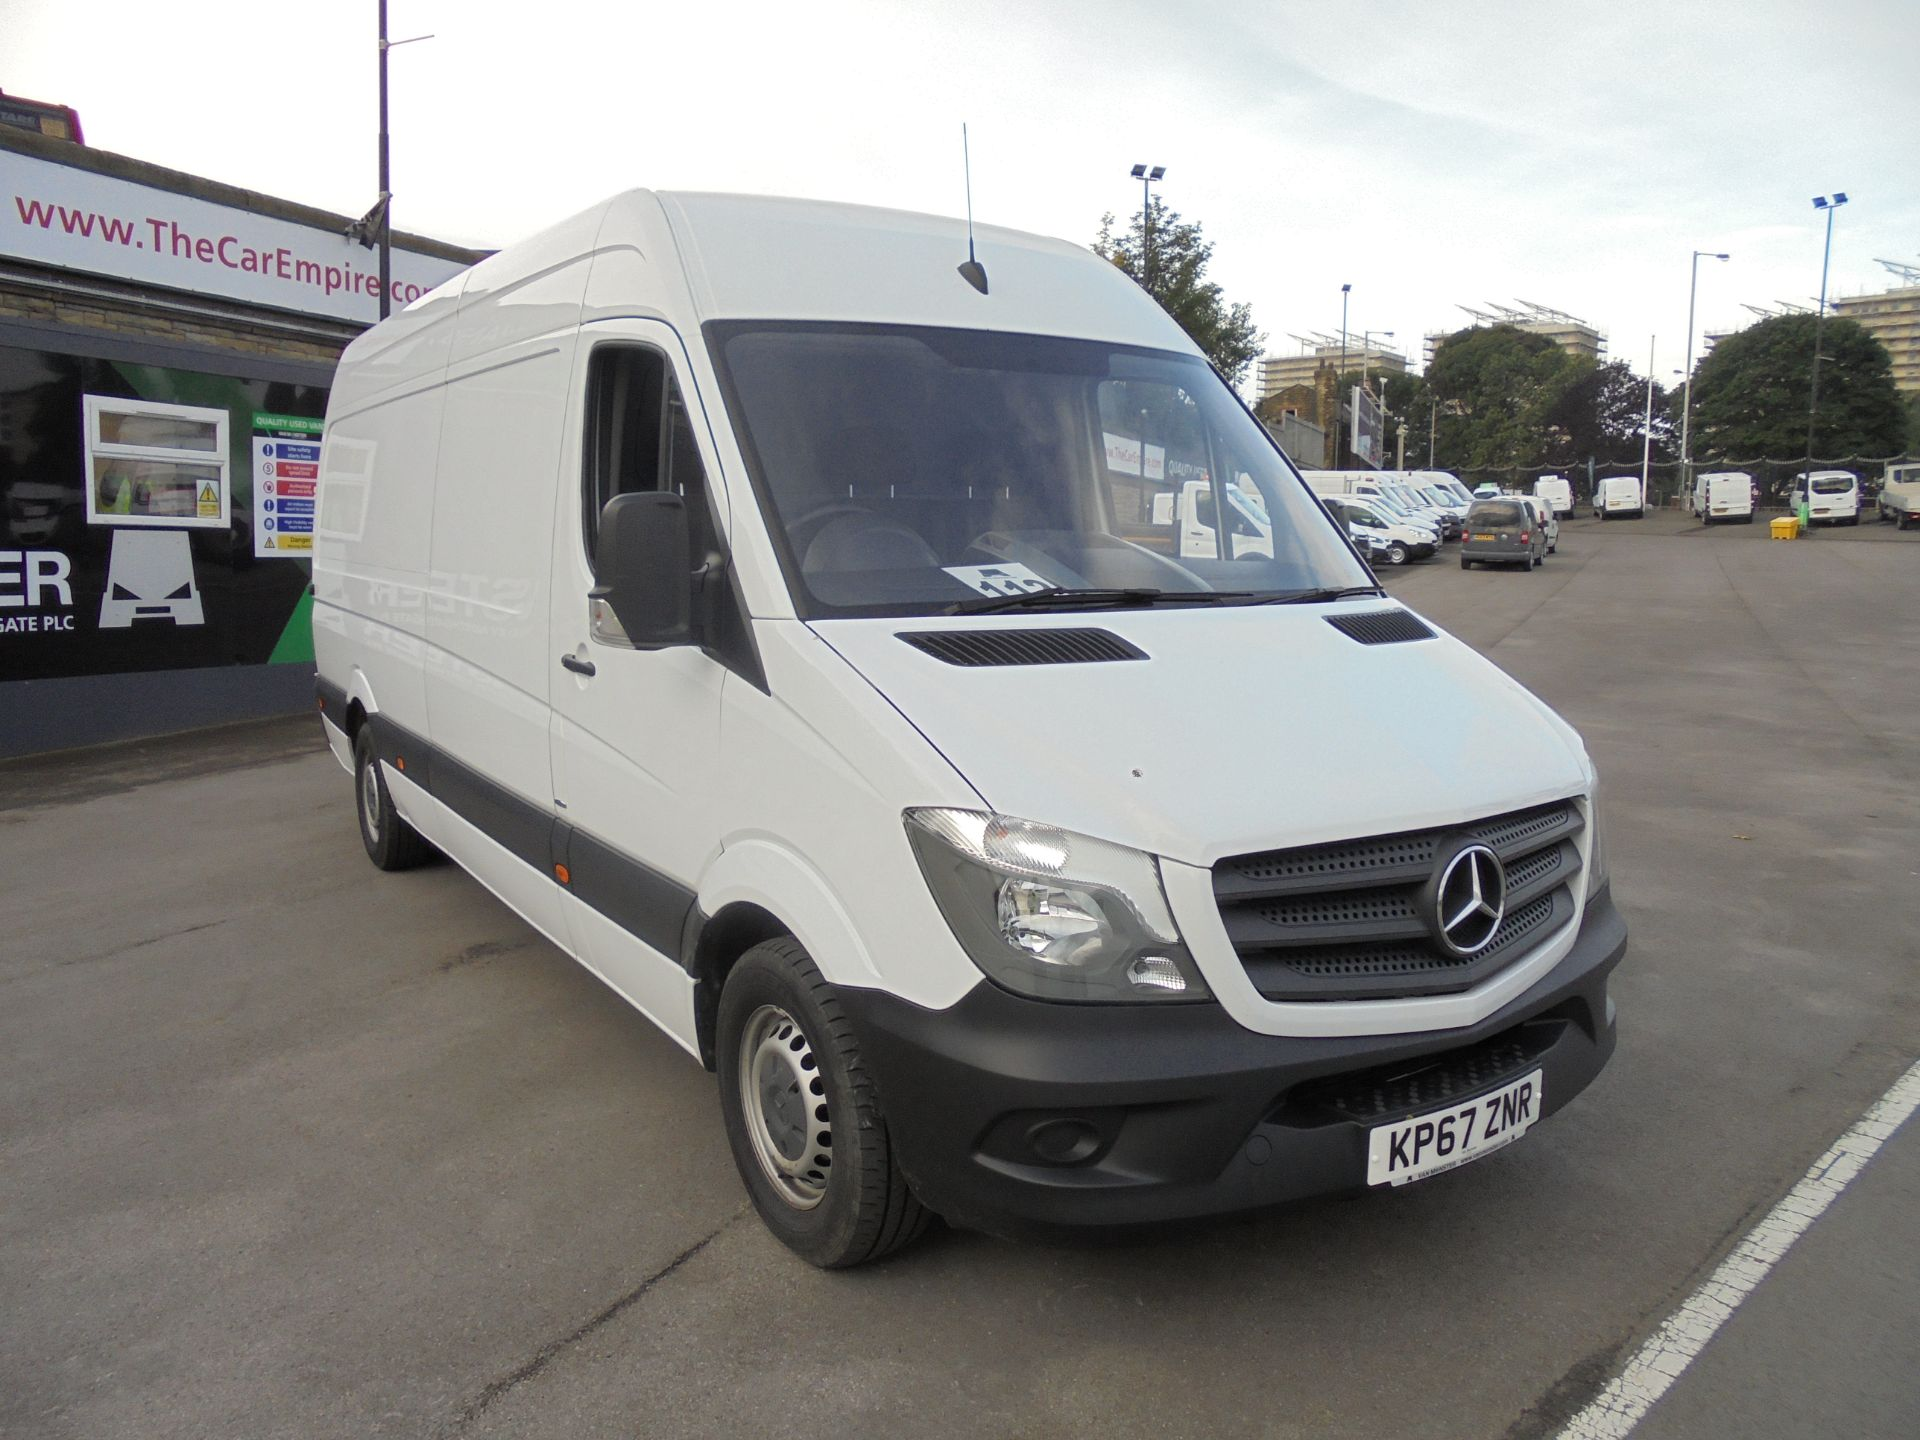 2017 Mercedes-Benz Sprinter 3.5T High Roof Van LWB (KP67ZNR)